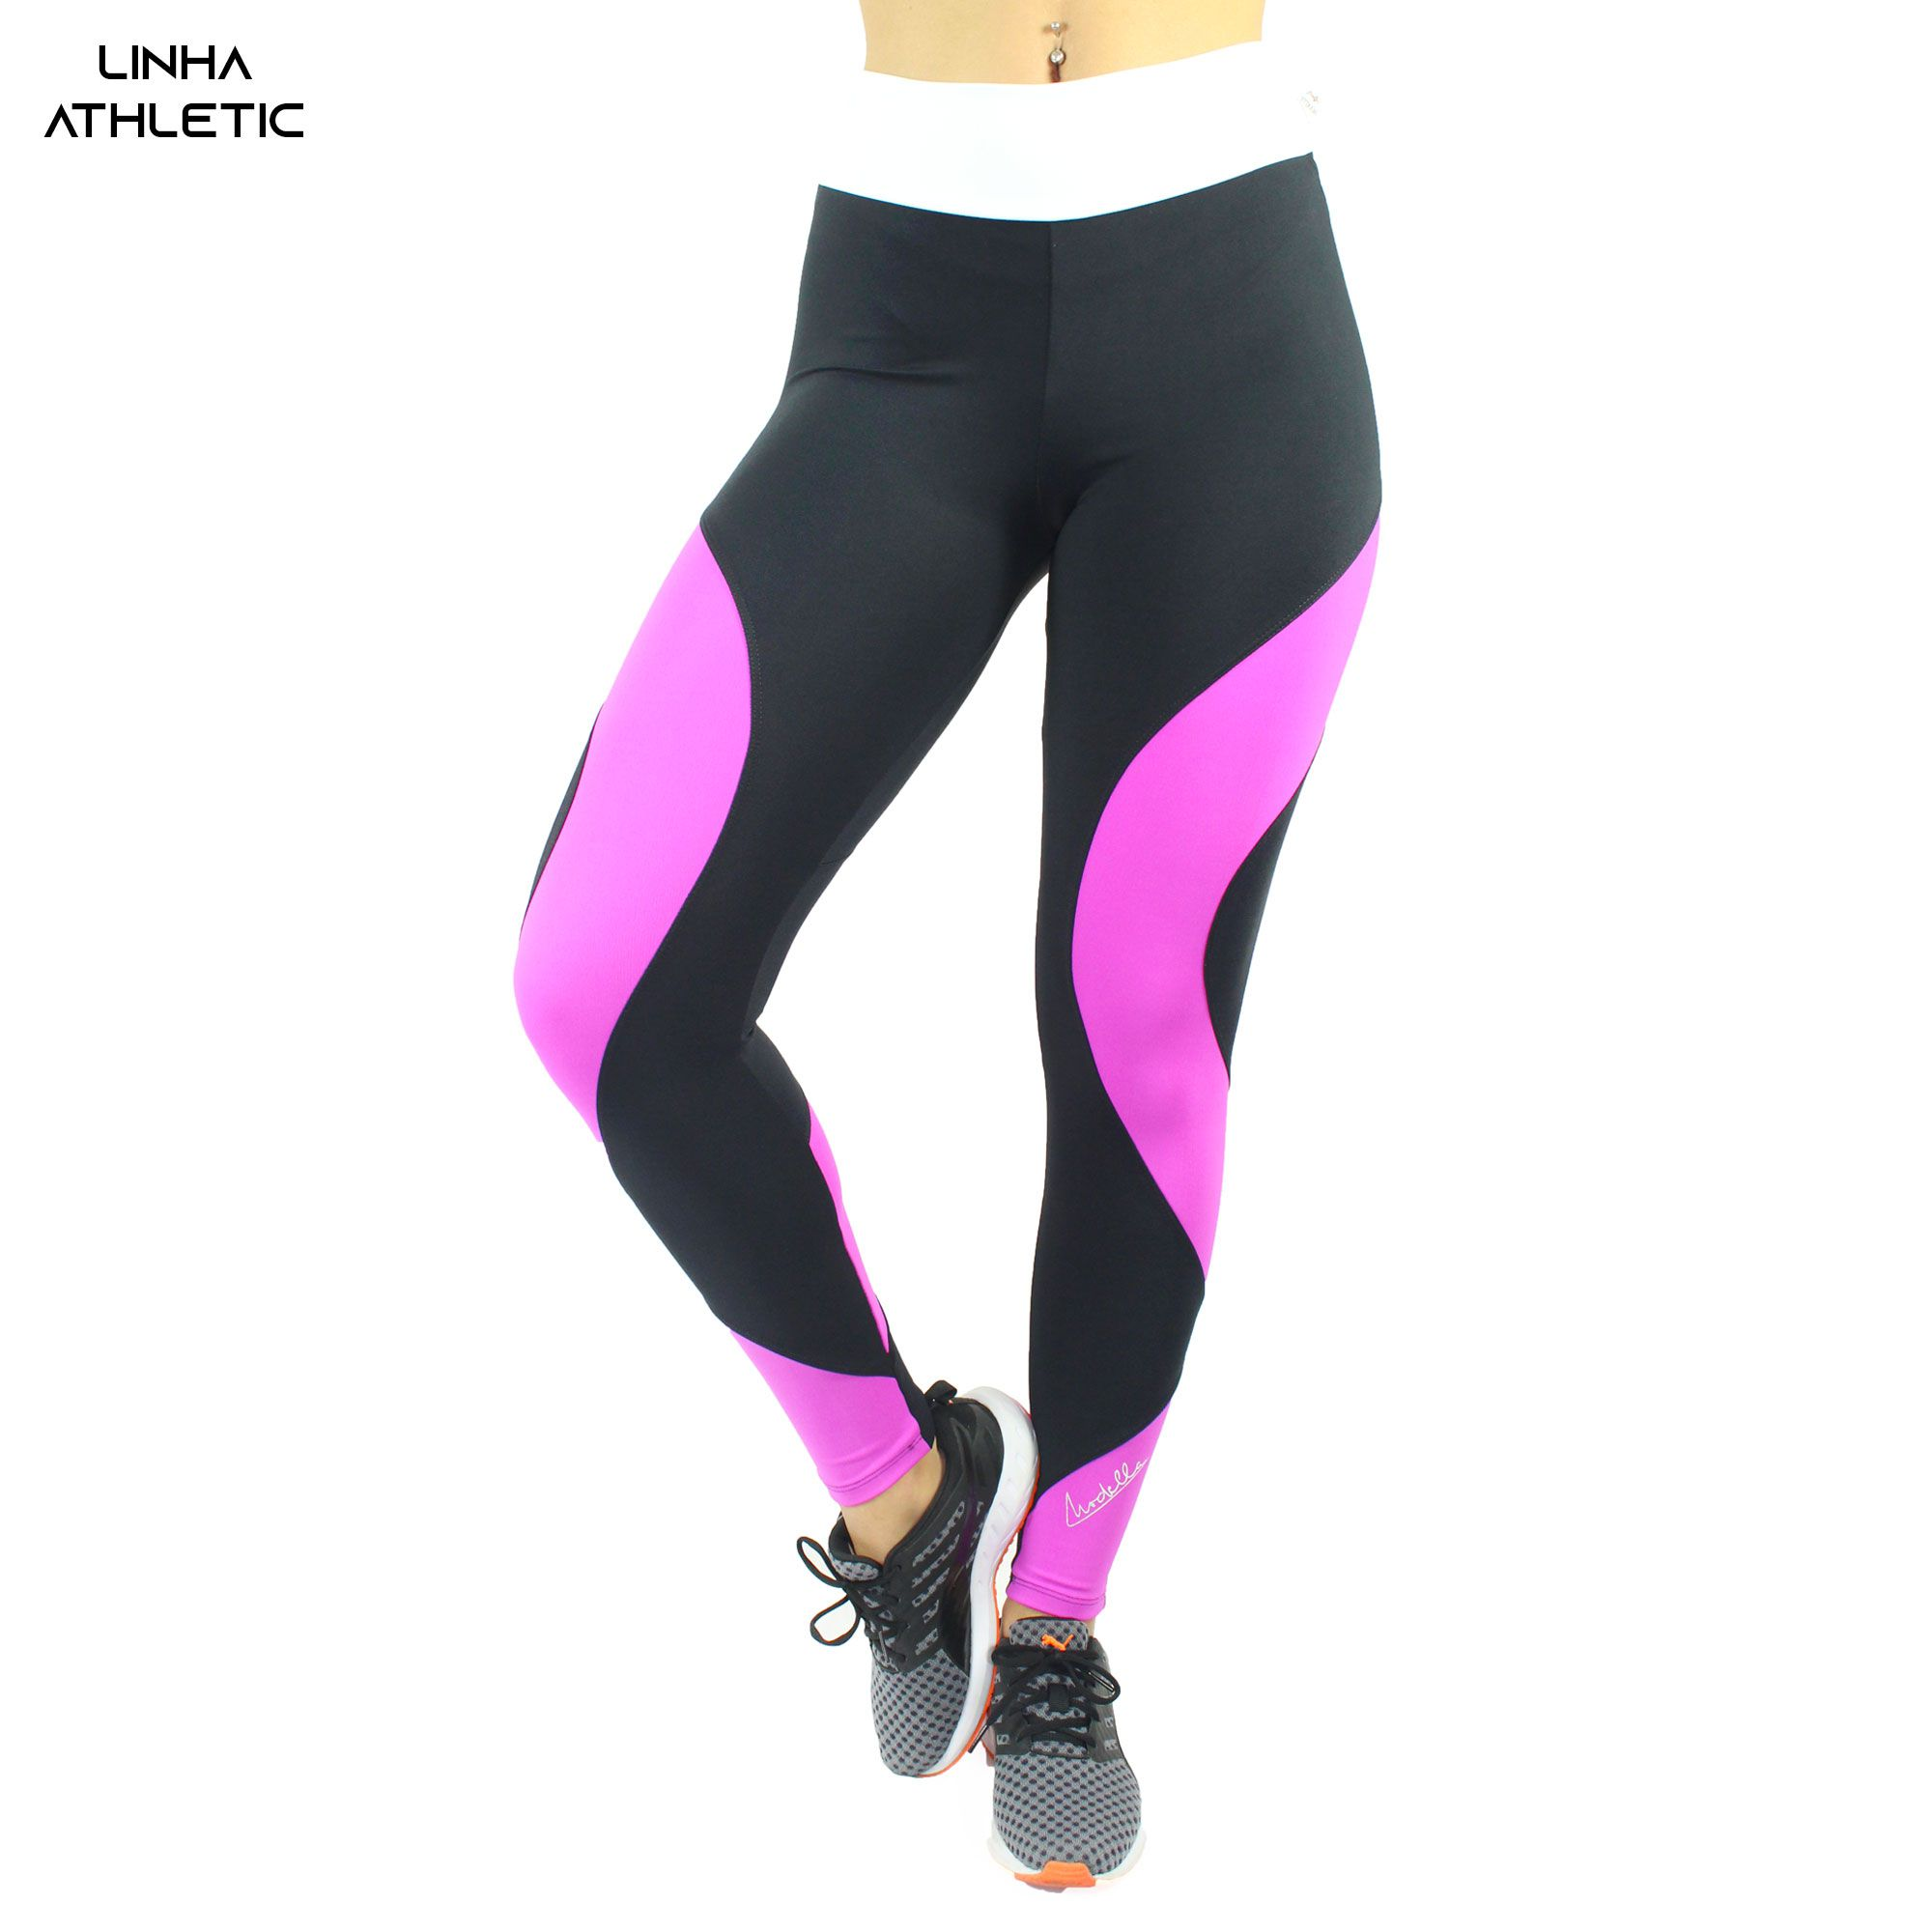 Legging Athletic By Gracyanne Barbosa